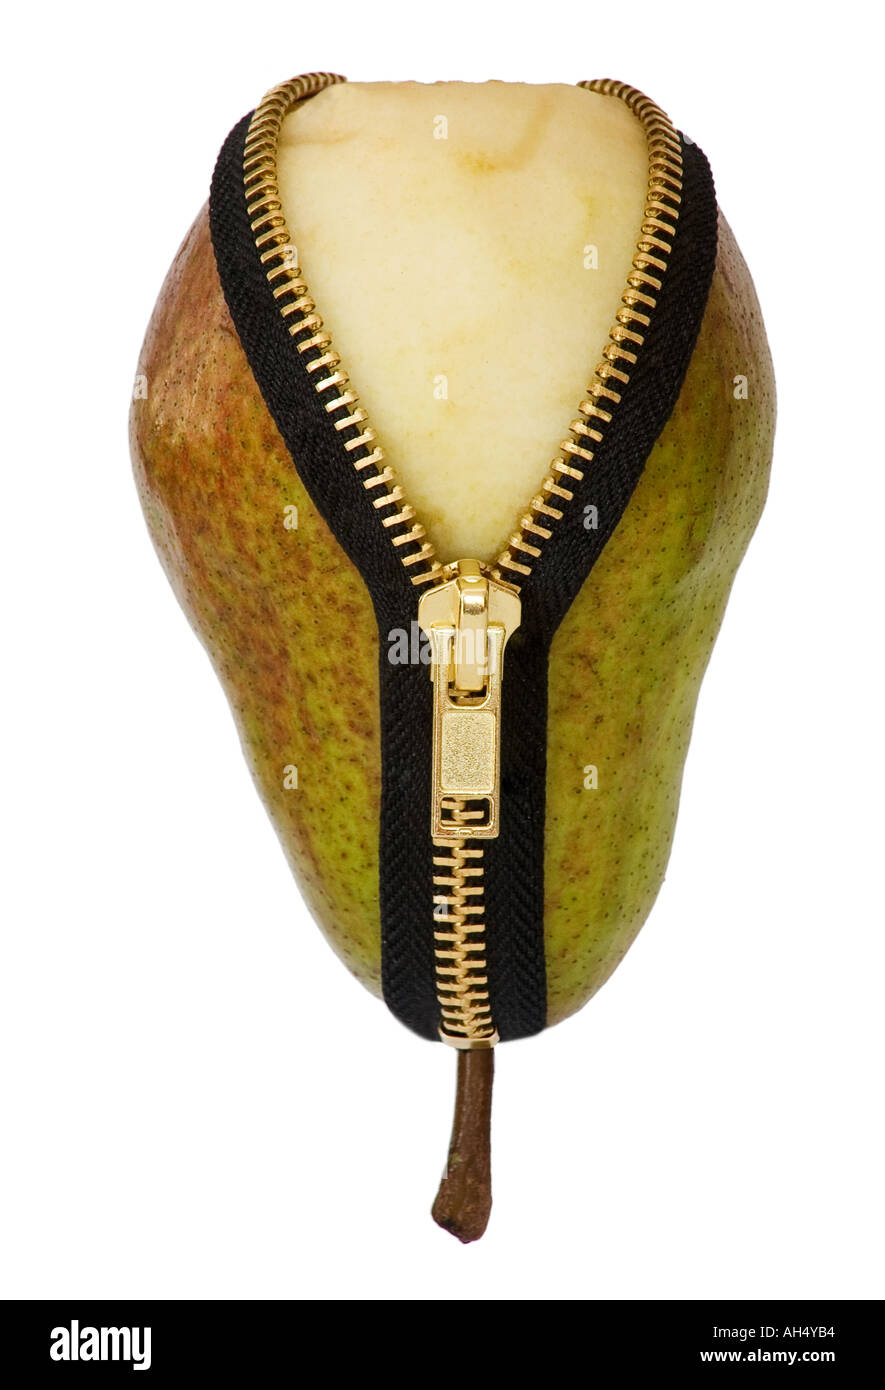 A tape measure wrapped around a pear with a zipped opening isolated on a white background - Stock Image